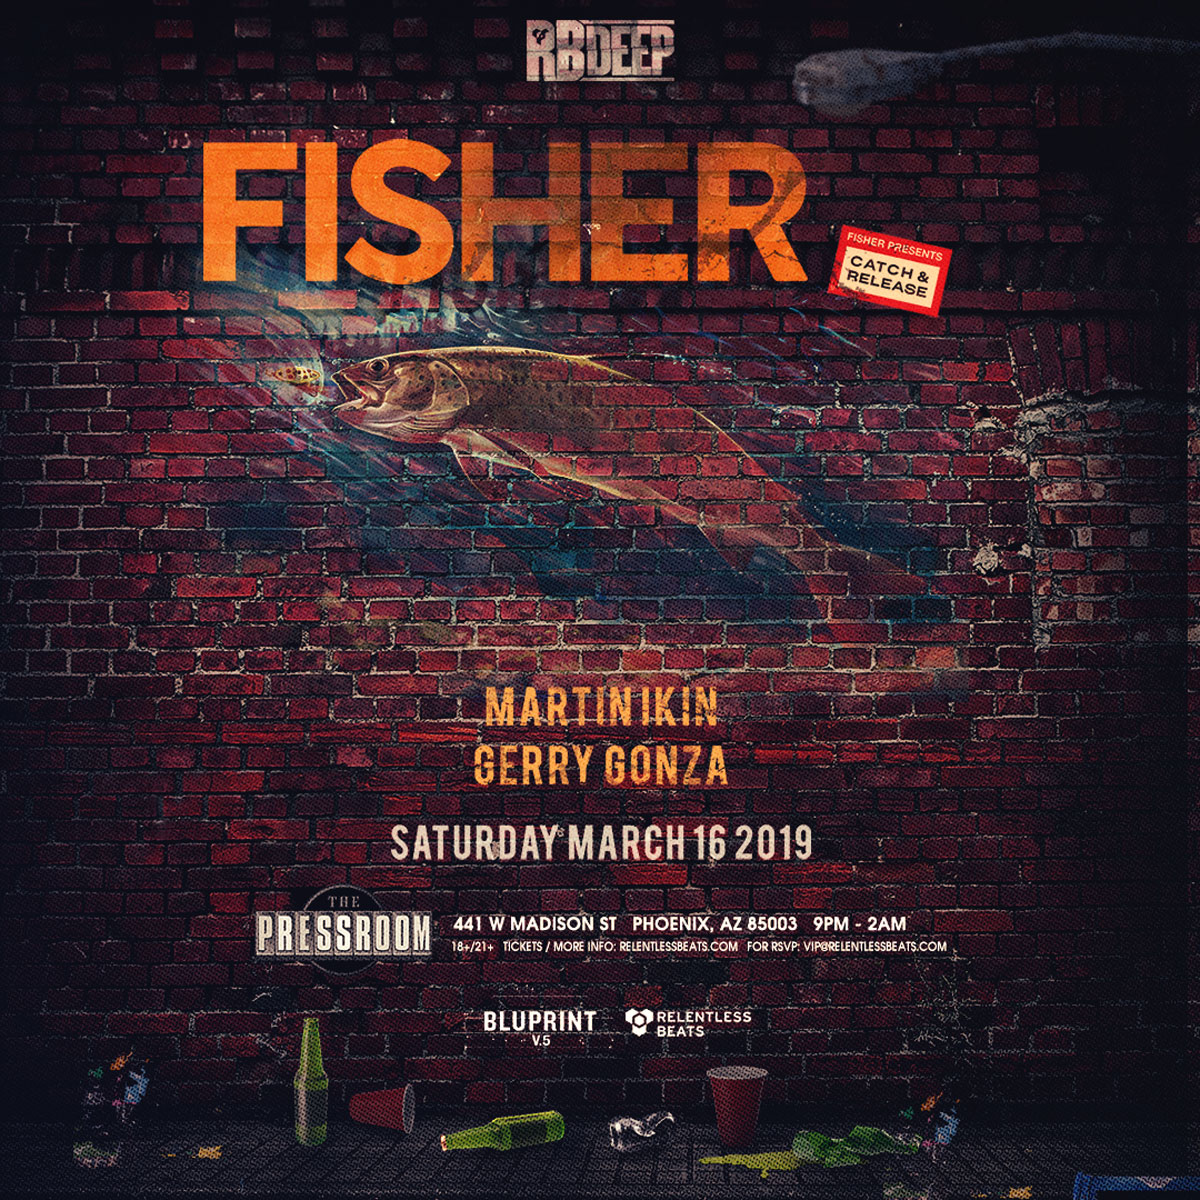 Flyer for Fisher